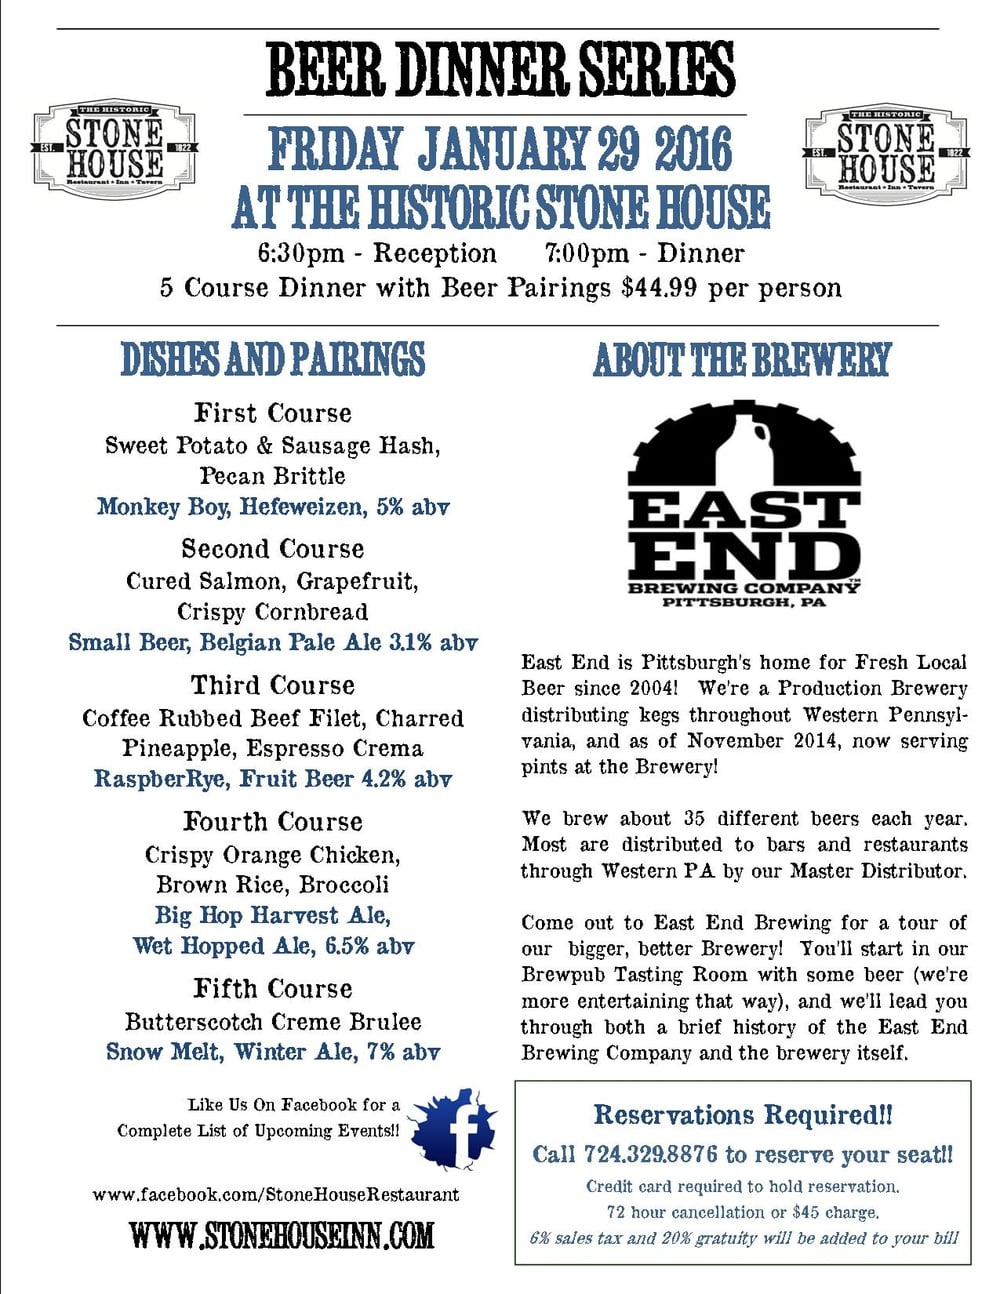 East End Brewing Flyer 1.29.16 (1).jpg